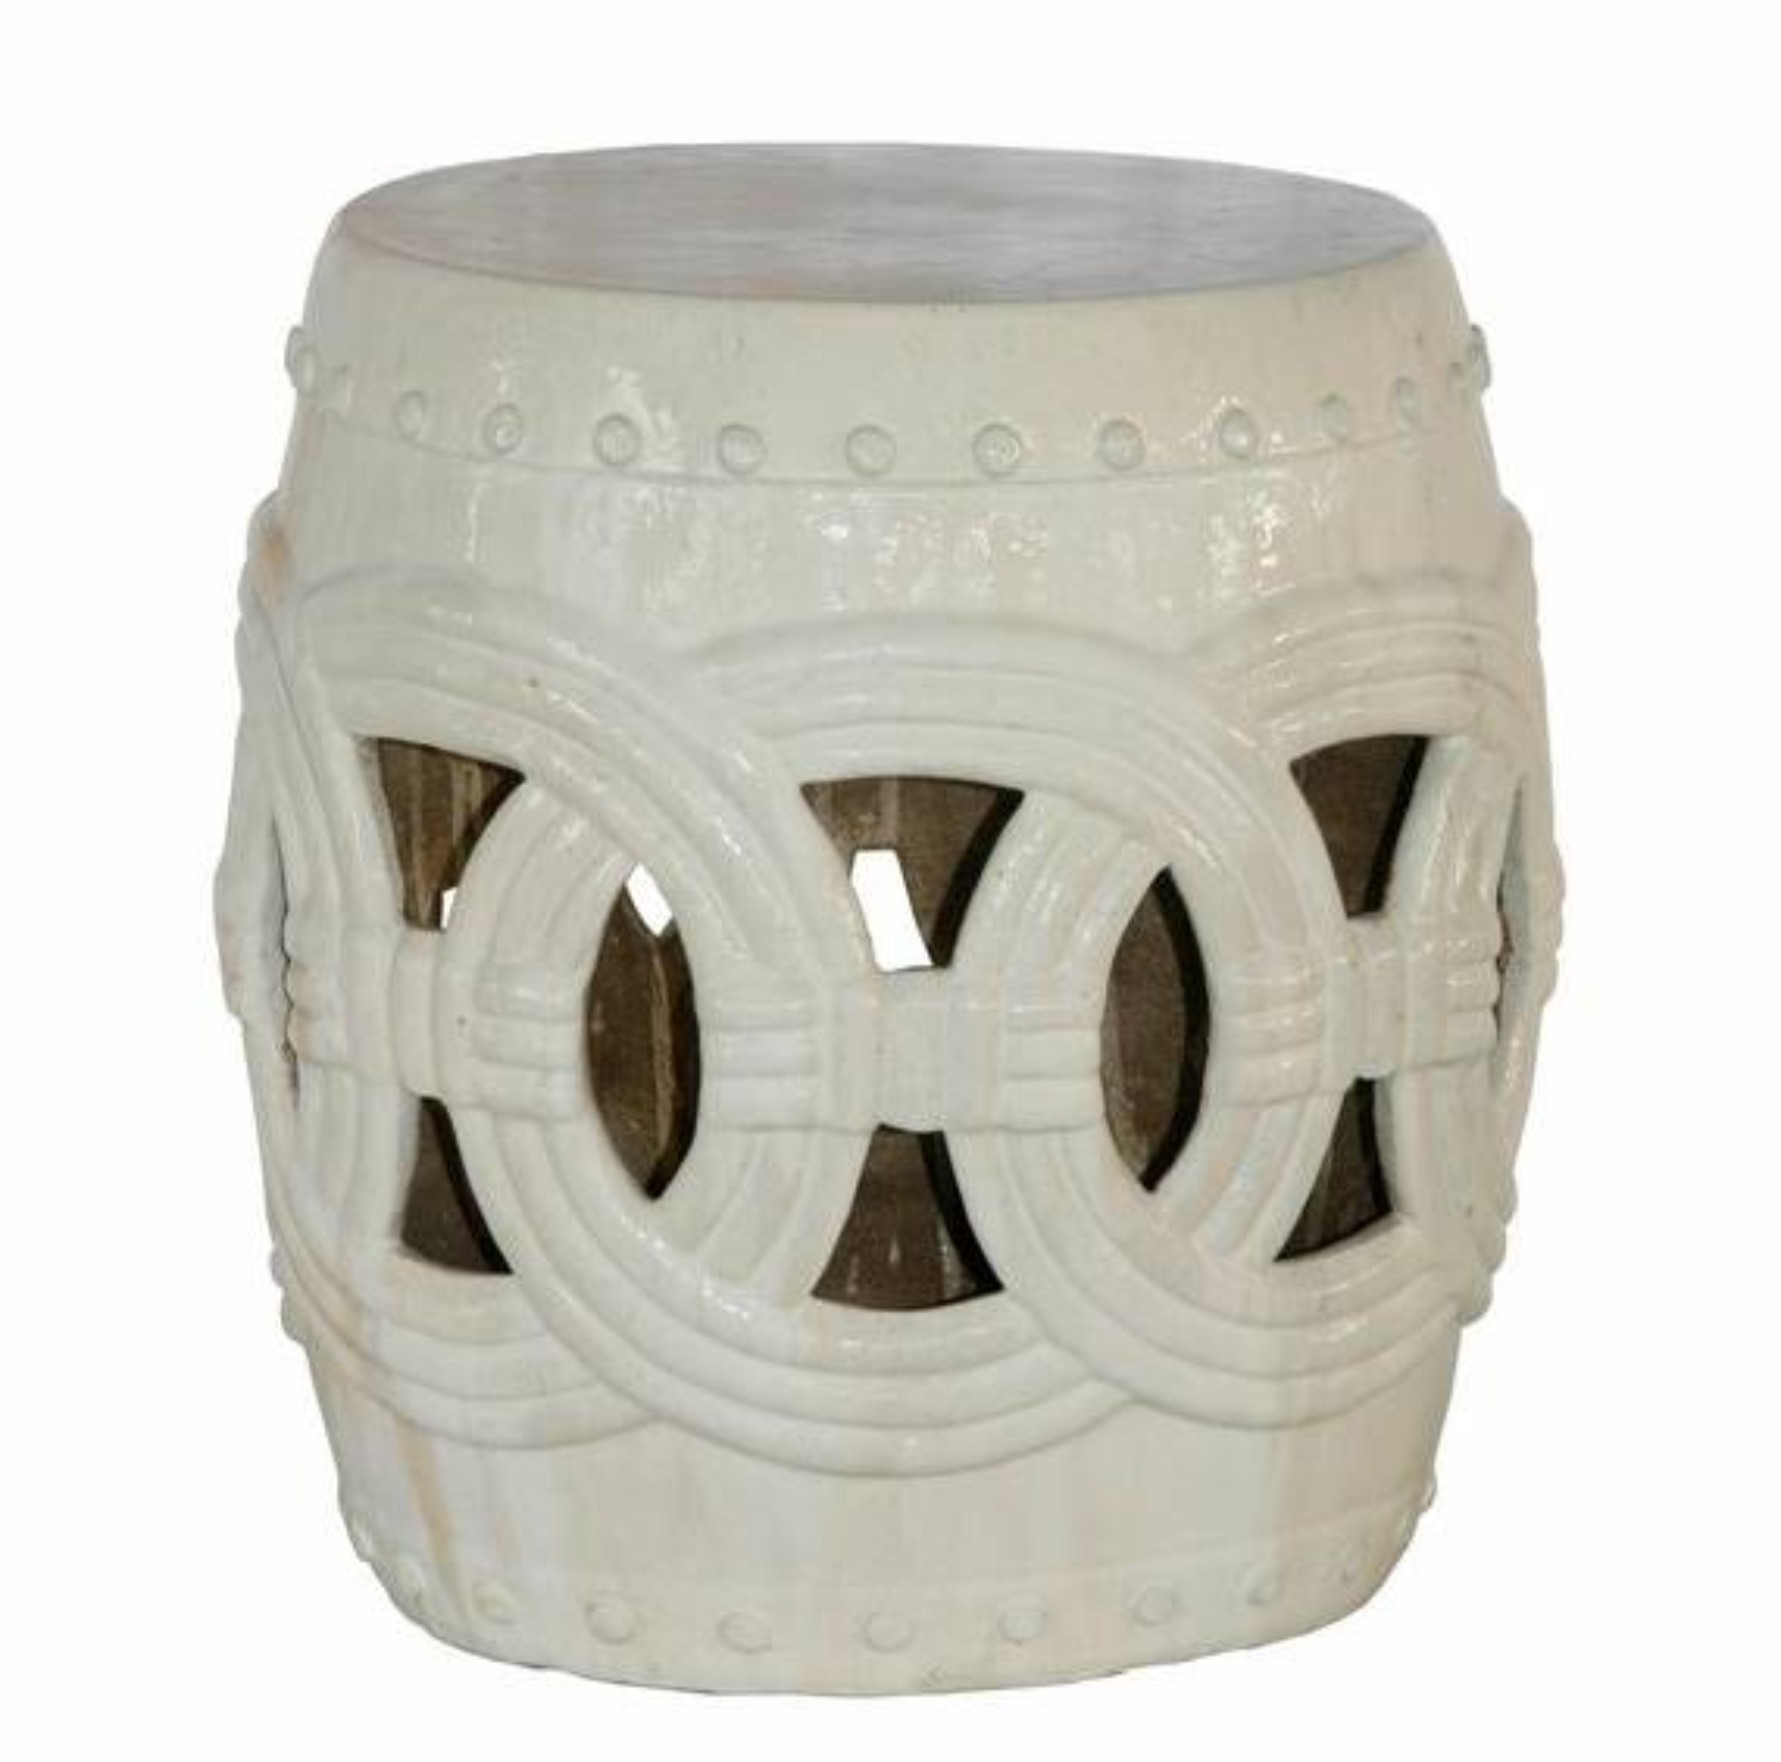 Brilliant garden stool for decorating interior ideas with ceramic garden stool